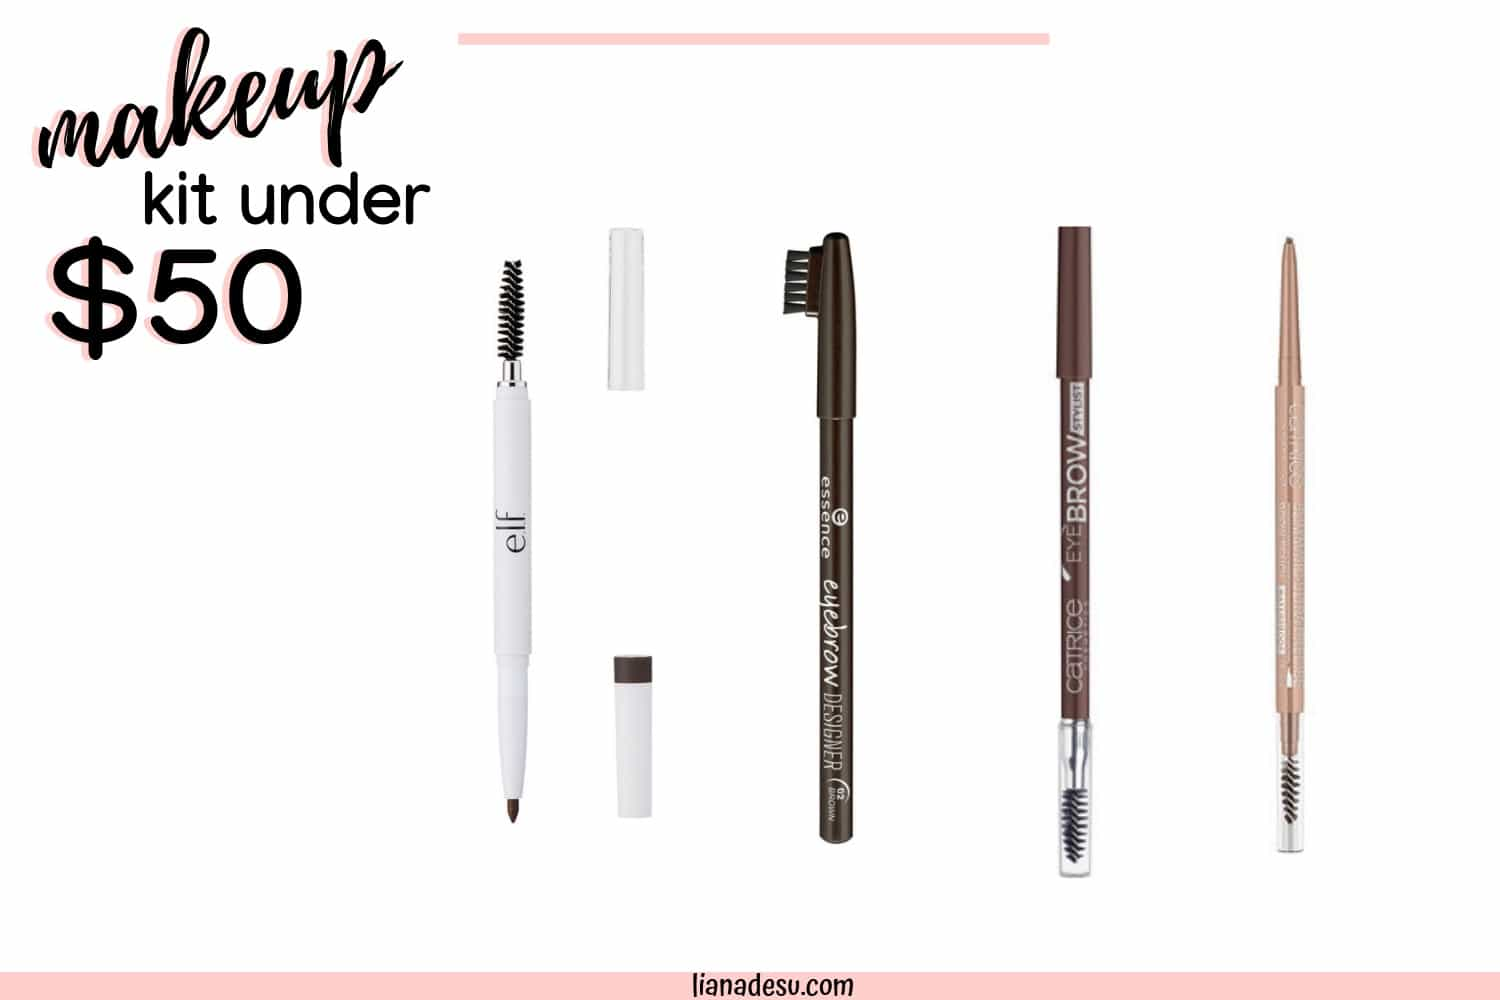 A full face of drugstore makeup for under $50! Get everything you need to do your makeup for a total of under $50! Amazing drugstore makeup products for cheap! #drugstore #makeup #budget #lianadesu